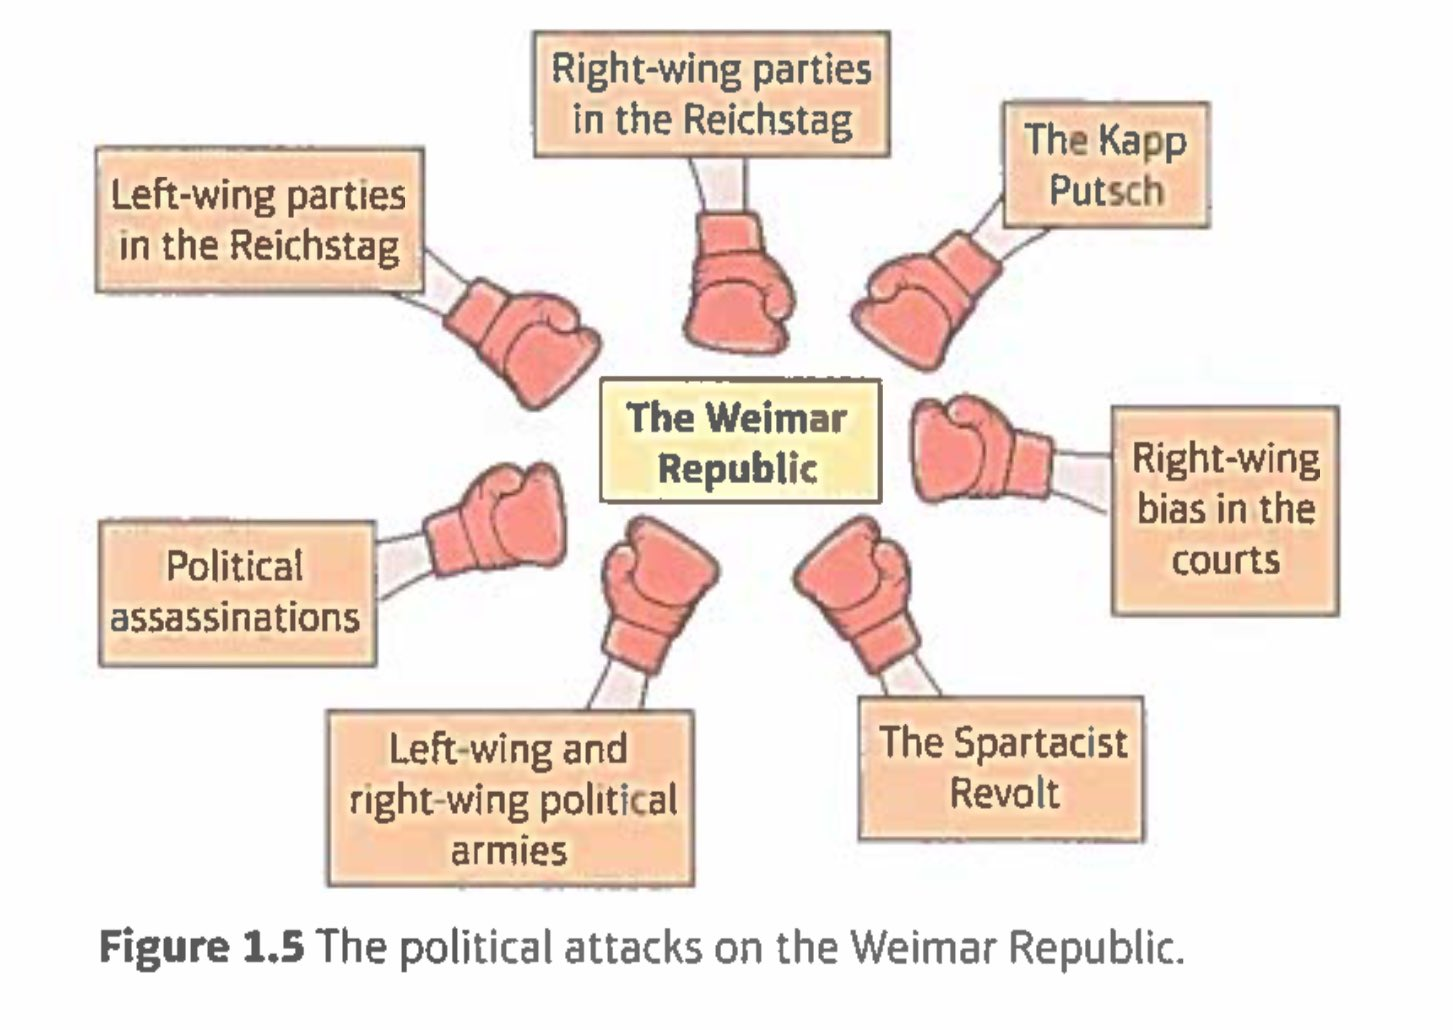 an analysis of the weimar republic in germany Buy the weimar republic (questions and analysis in history) 2 by stephen j lee (isbn: 9780415473224) from amazon's book store everyday low prices and free delivery on eligible orders.